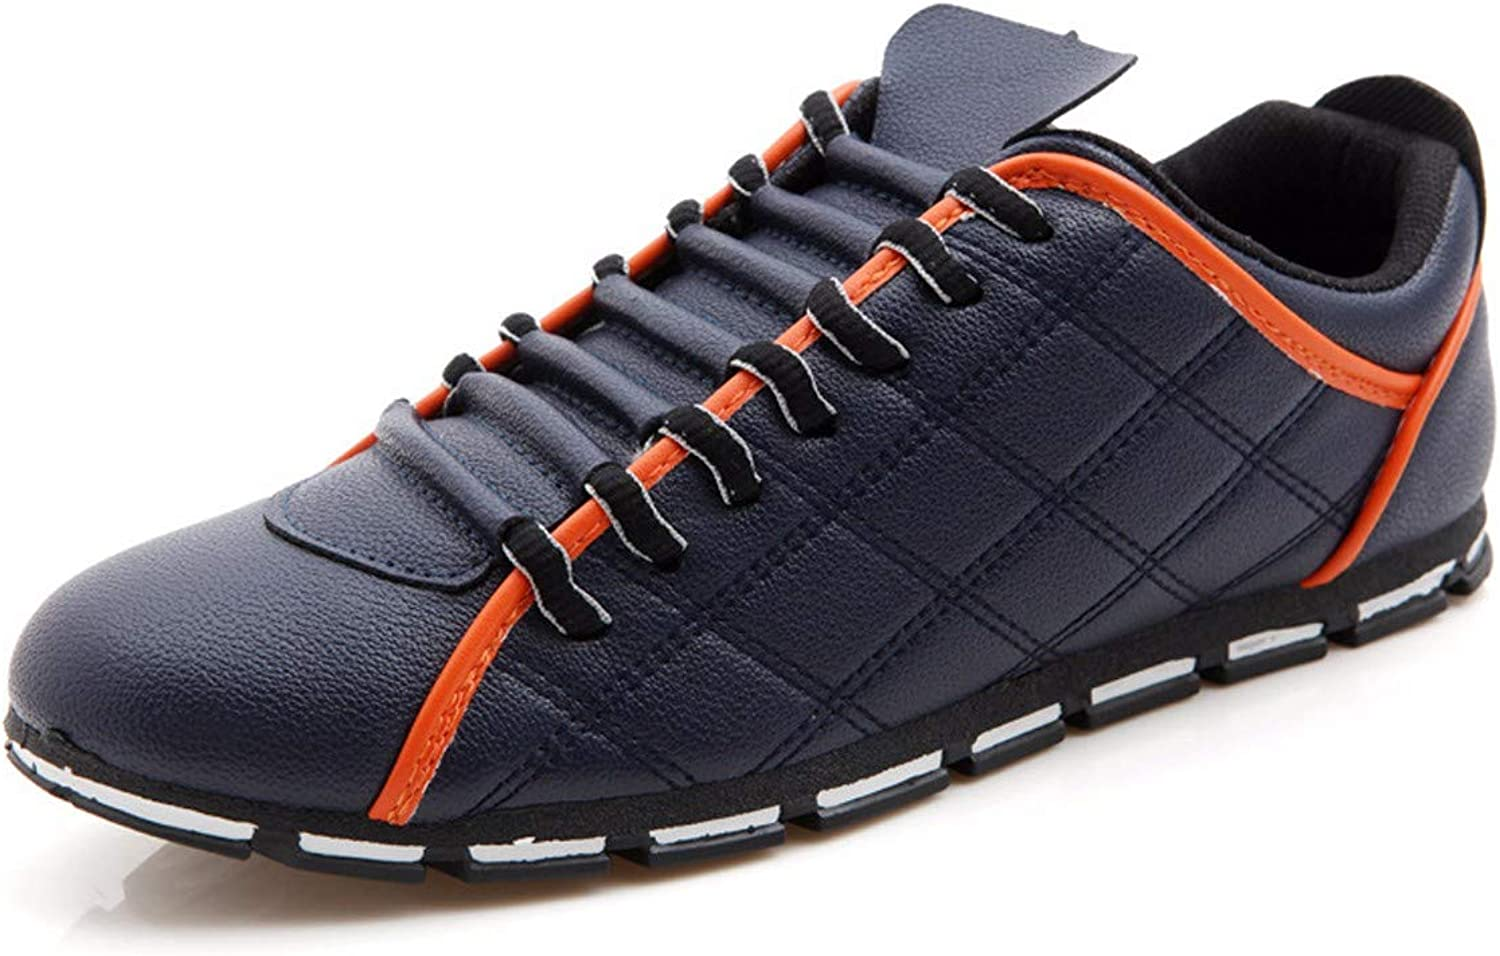 KMJBS-Autumn Sports shoes British Board shoes Men'S Casual shoes Student Fashion bluee Forty-Four